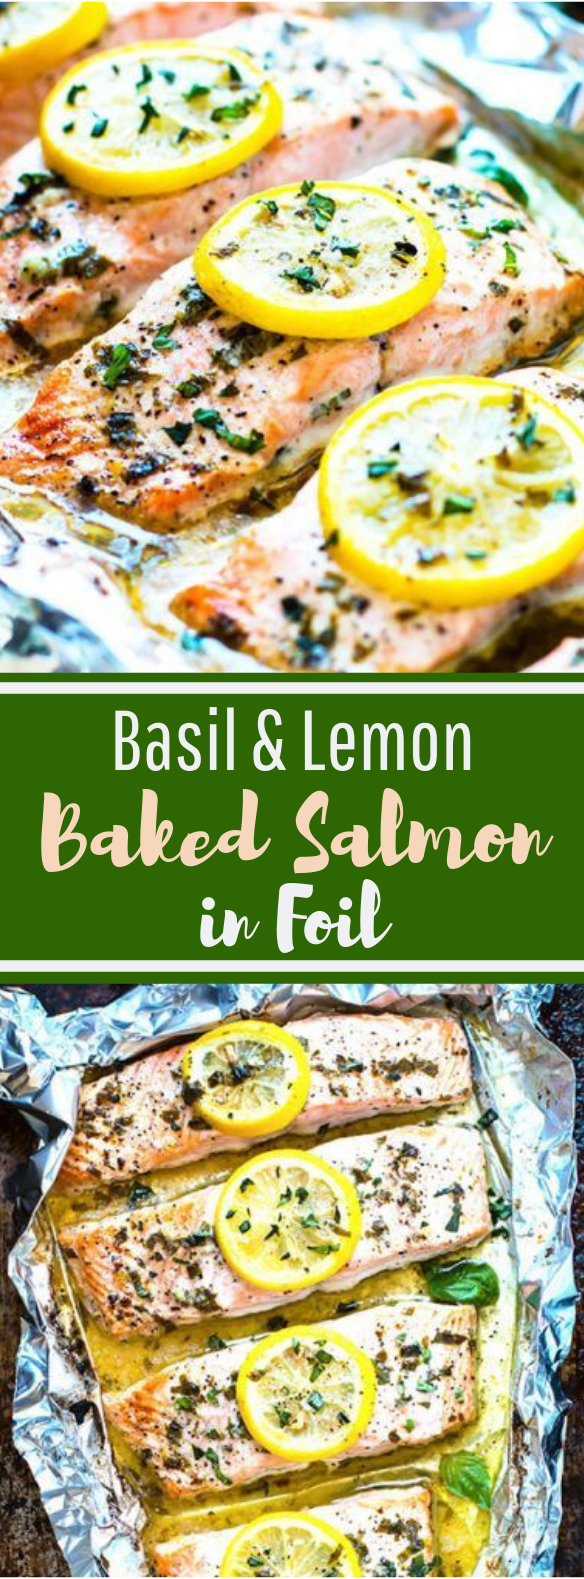 Basil & Lemon Baked Salmon in Foil #healthy #seafood